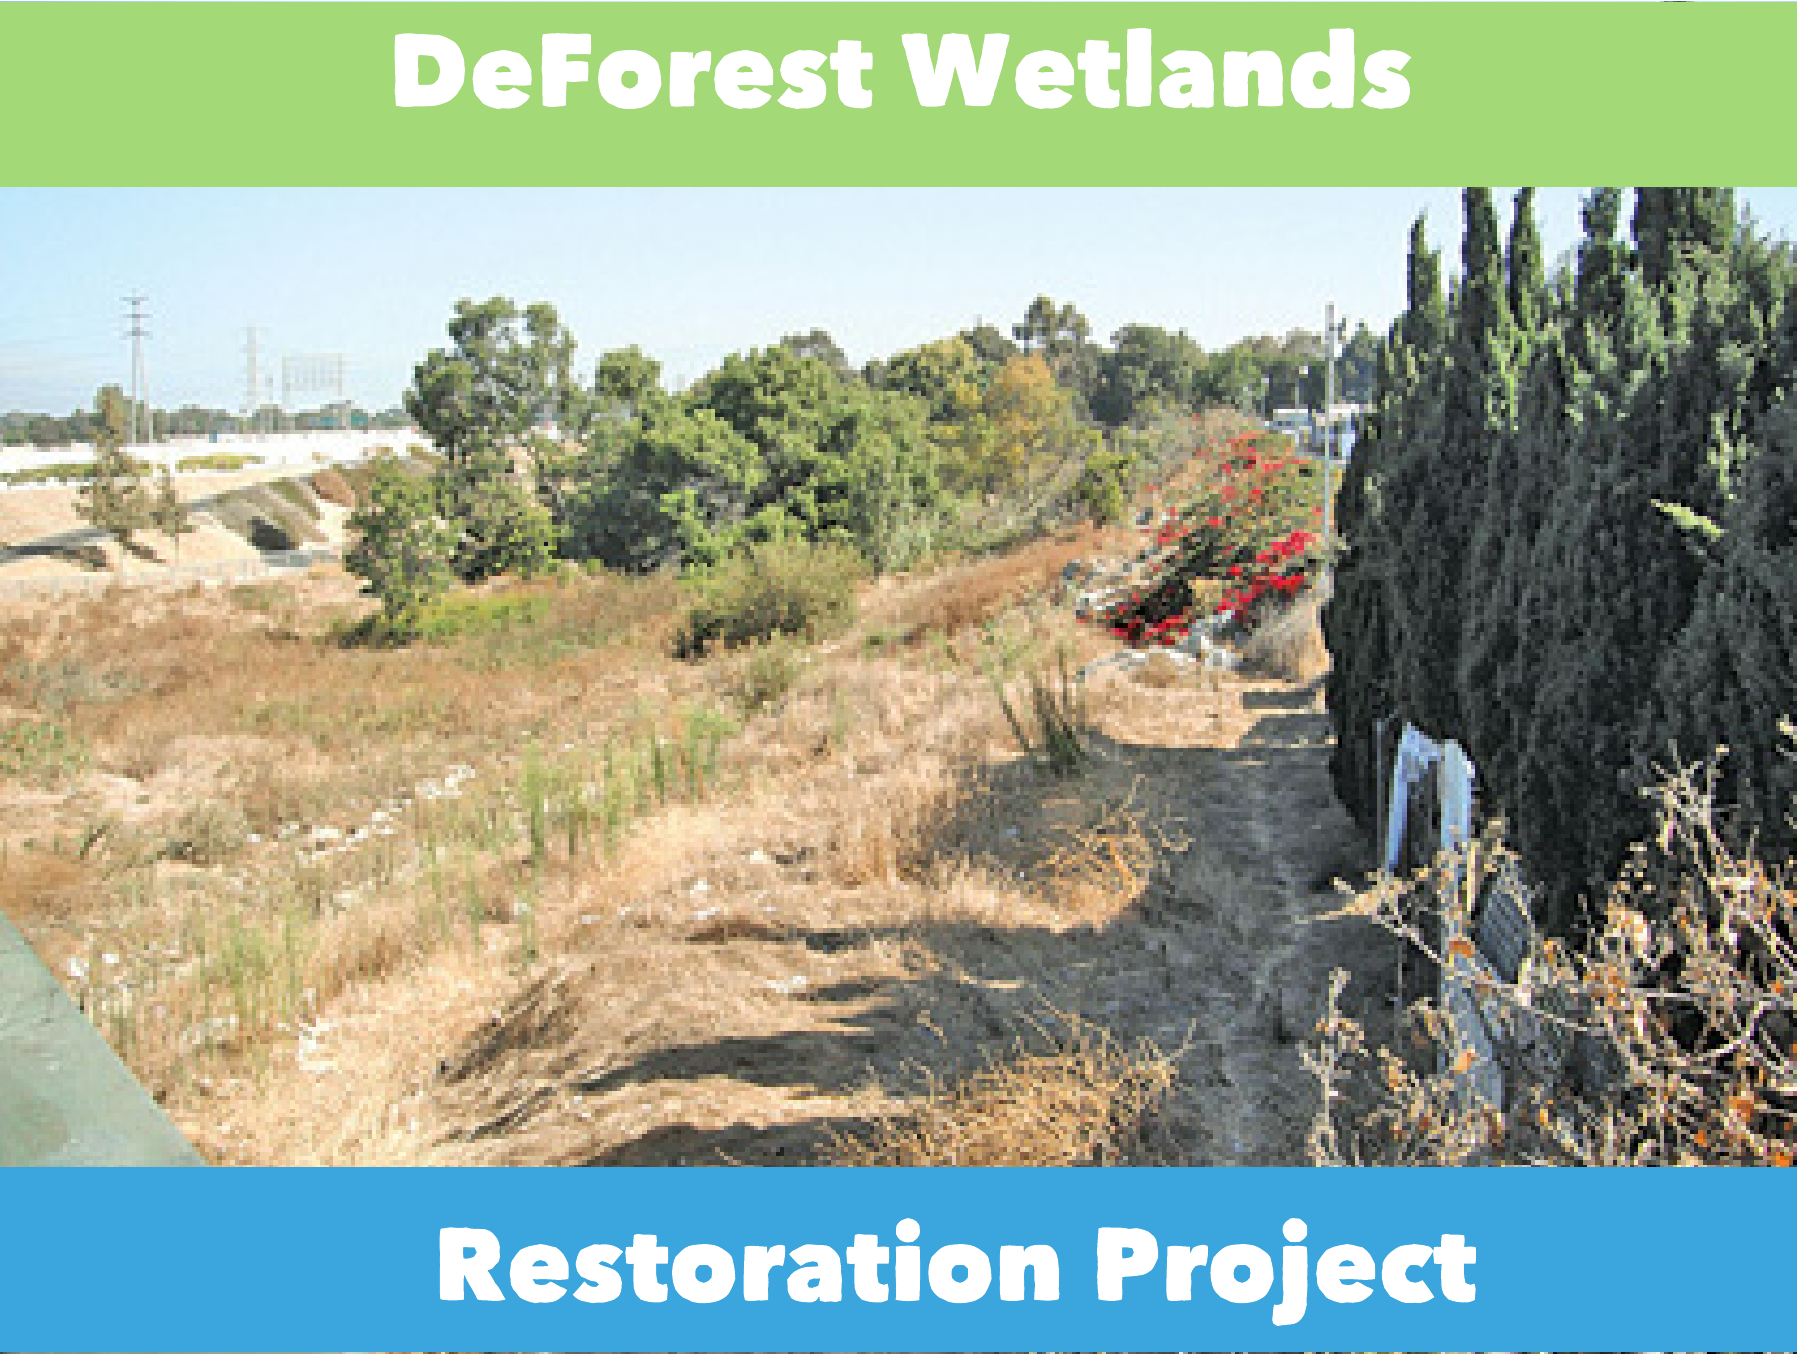 DeForest Wetlands Restoration Project